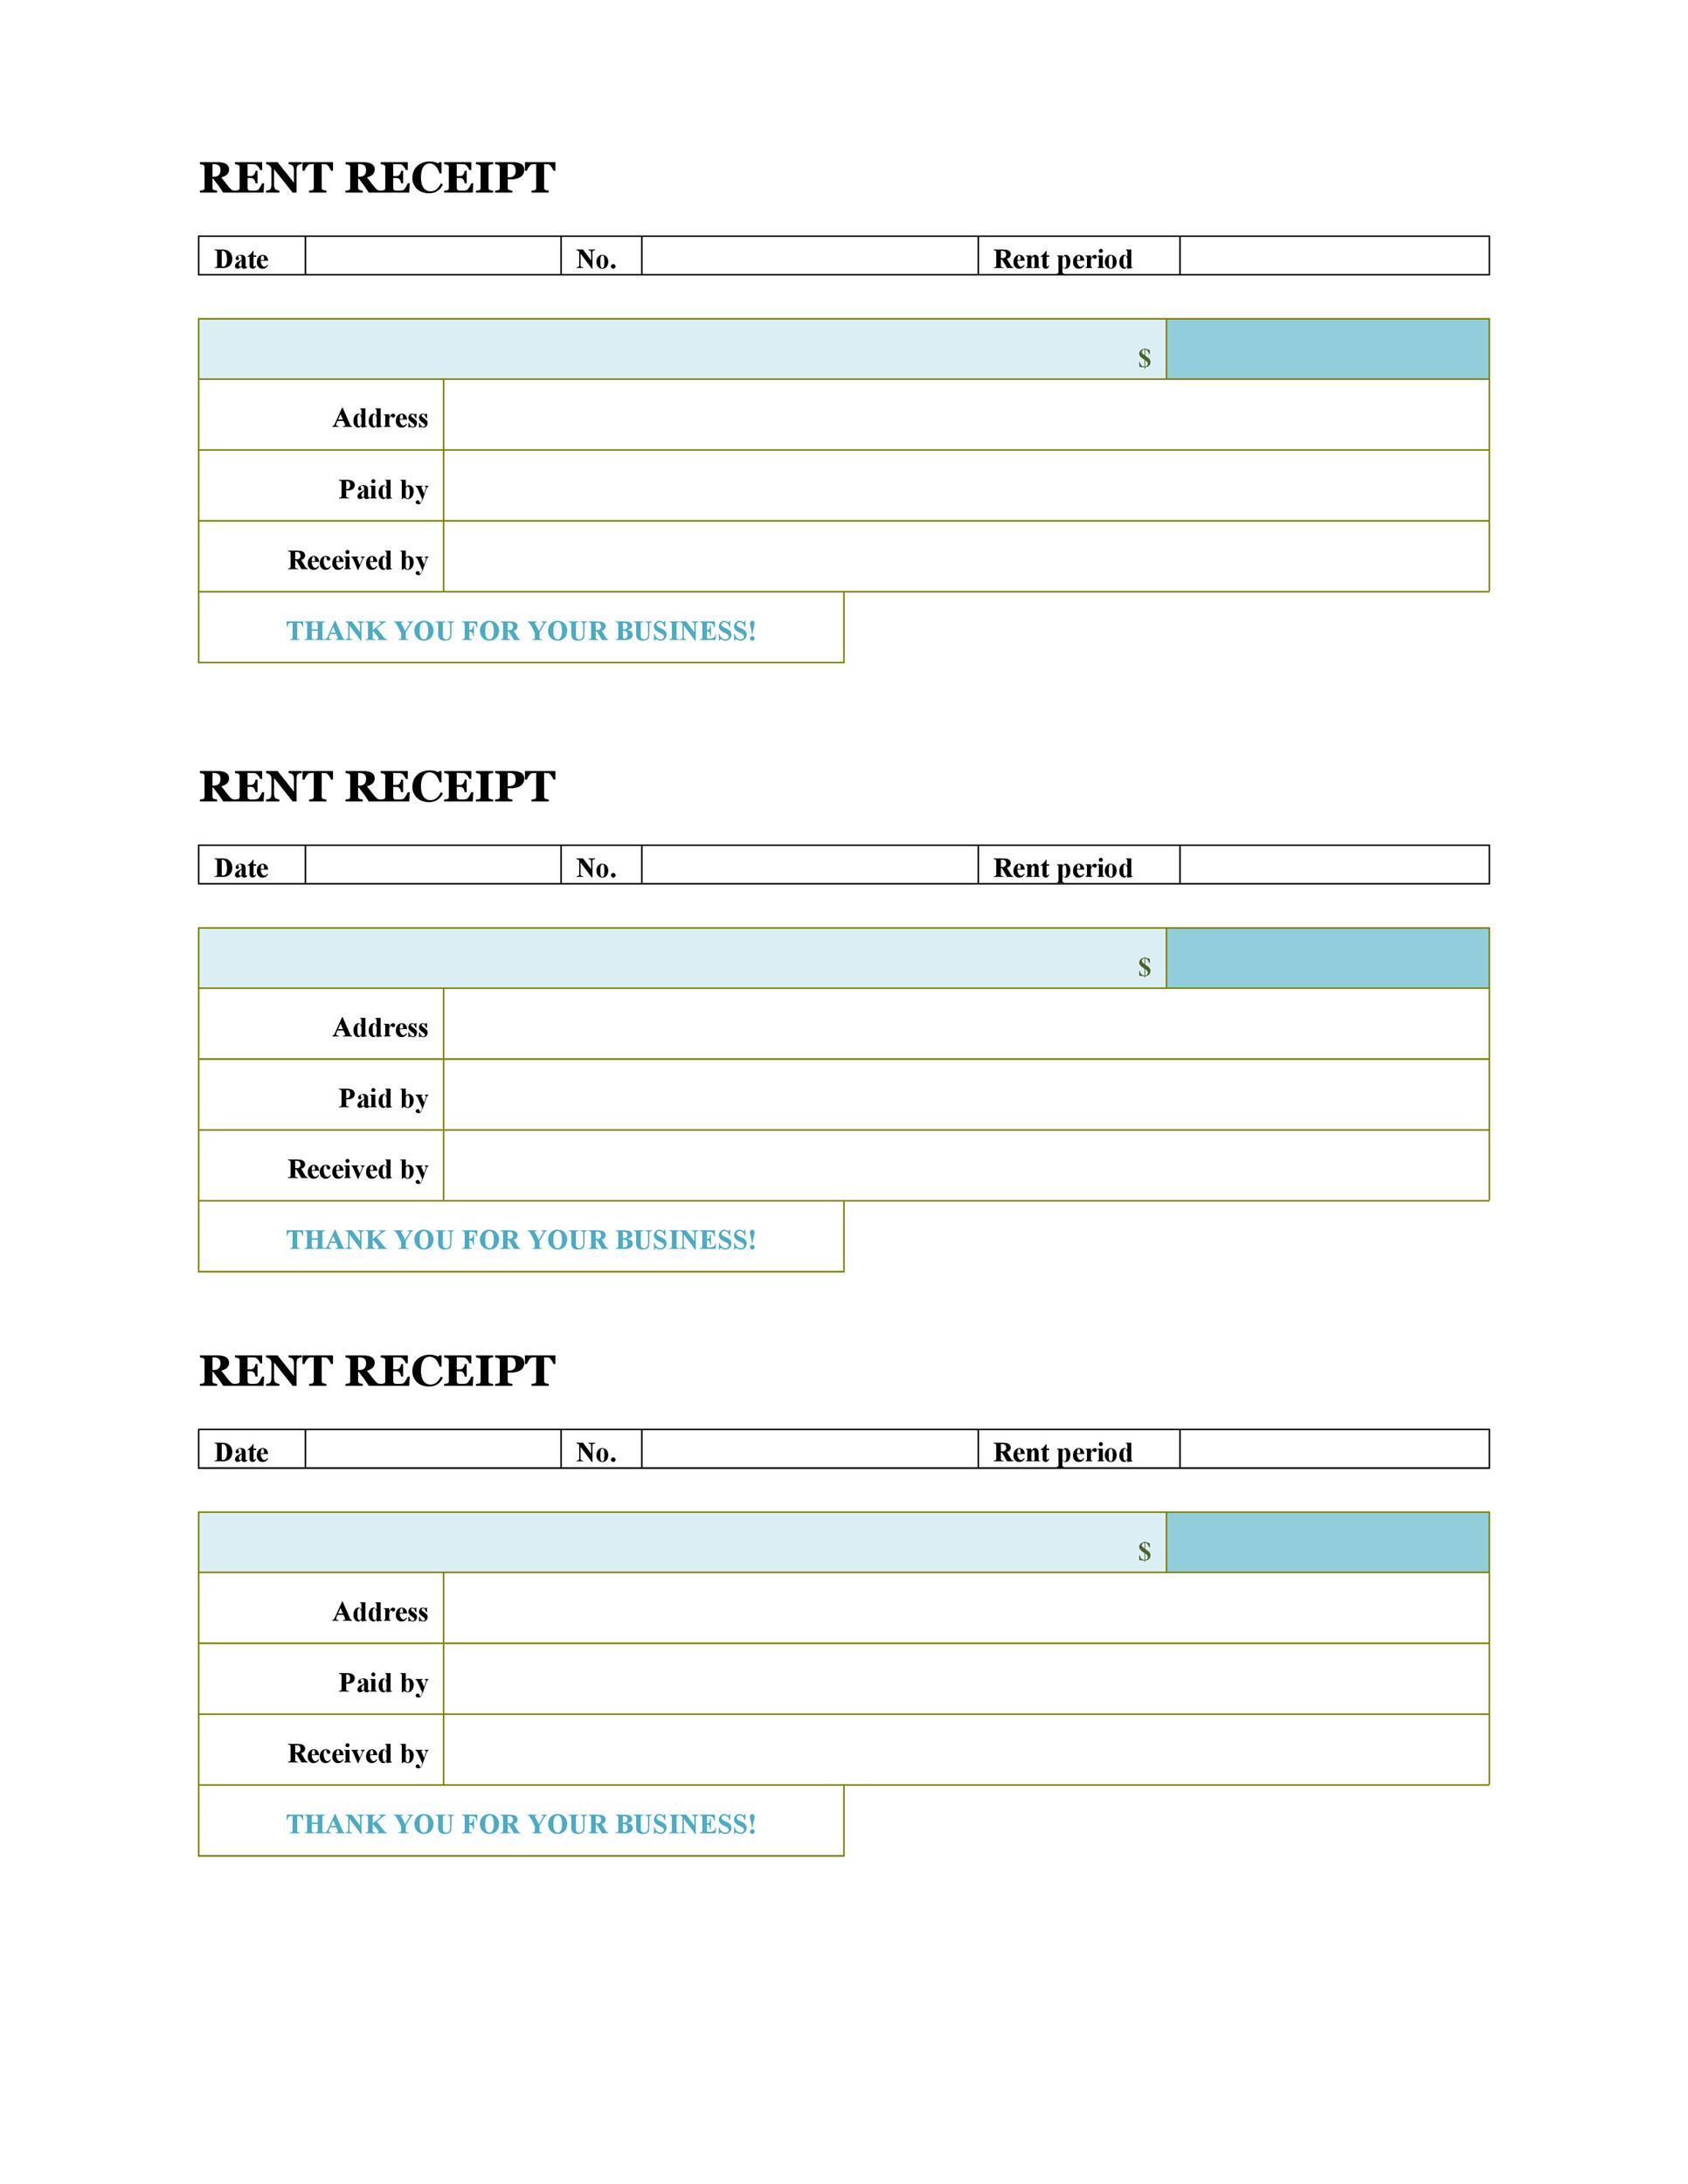 50 Free Receipt Templates Cash Sales Donation Taxi – Rental Receipt Word